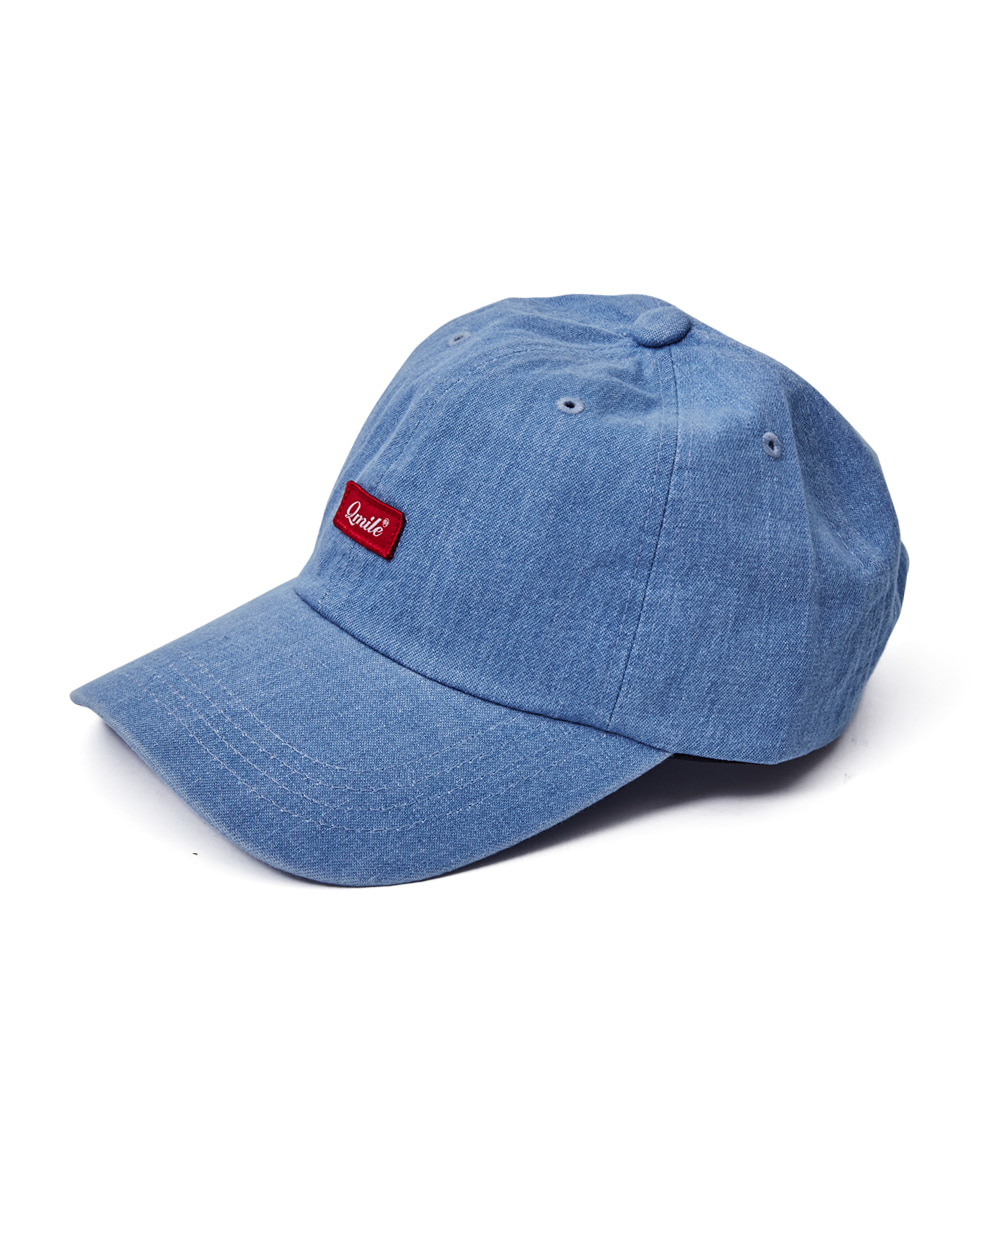 SCRIPT RED BOX BALLCAP | DENIM